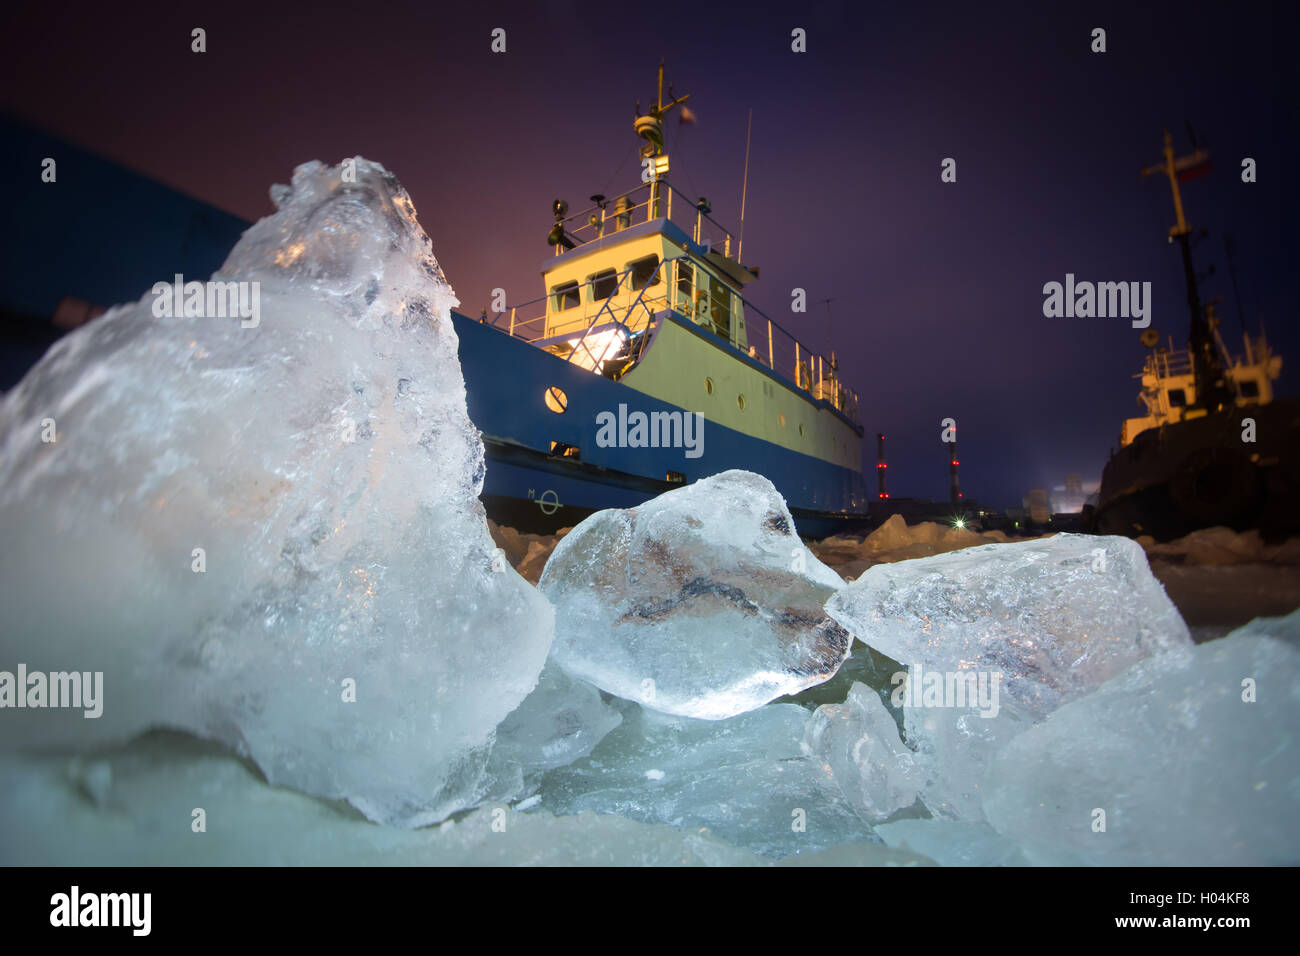 The Icebreaker ship trapped in ice tries to break and leave the bay between the glaciers Stock Photo